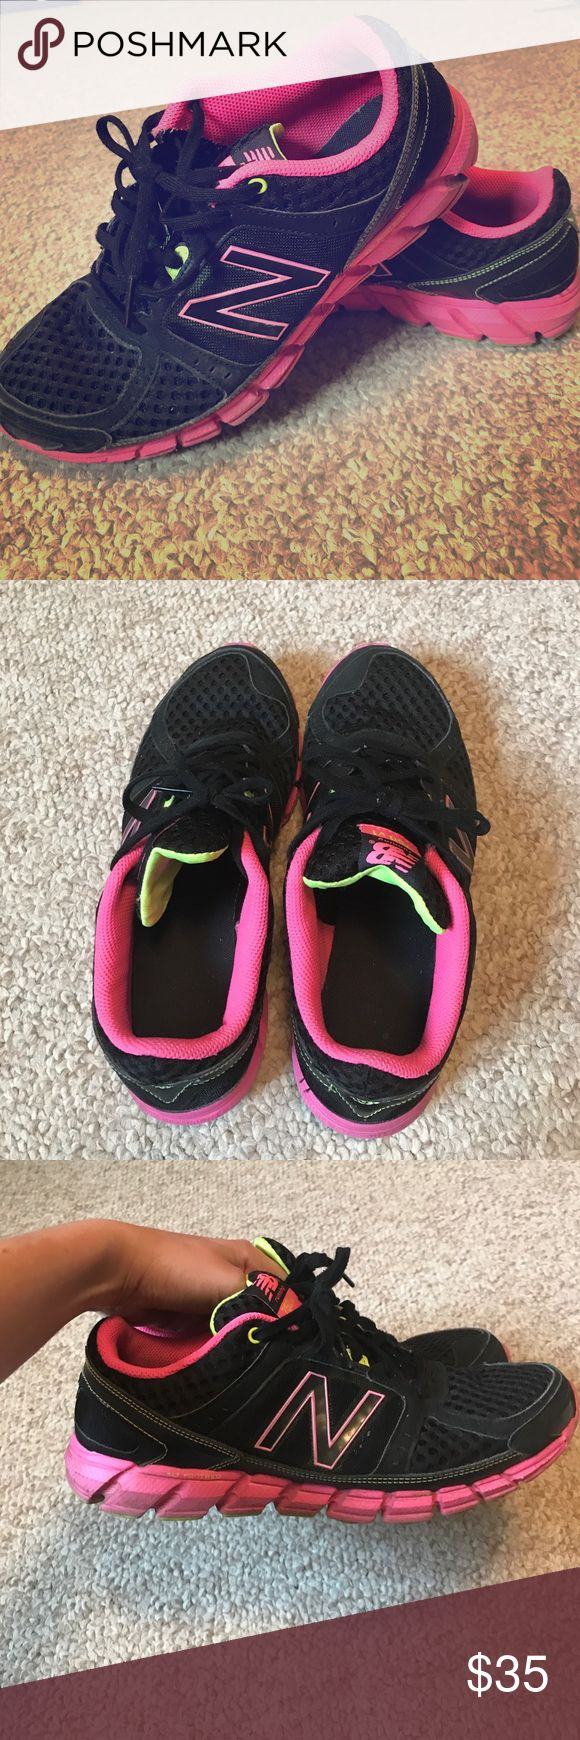 Women's New Balance Athletic Shoes Hot pink and black womens gently worn New balance shoes New Balance Shoes Athletic Shoes